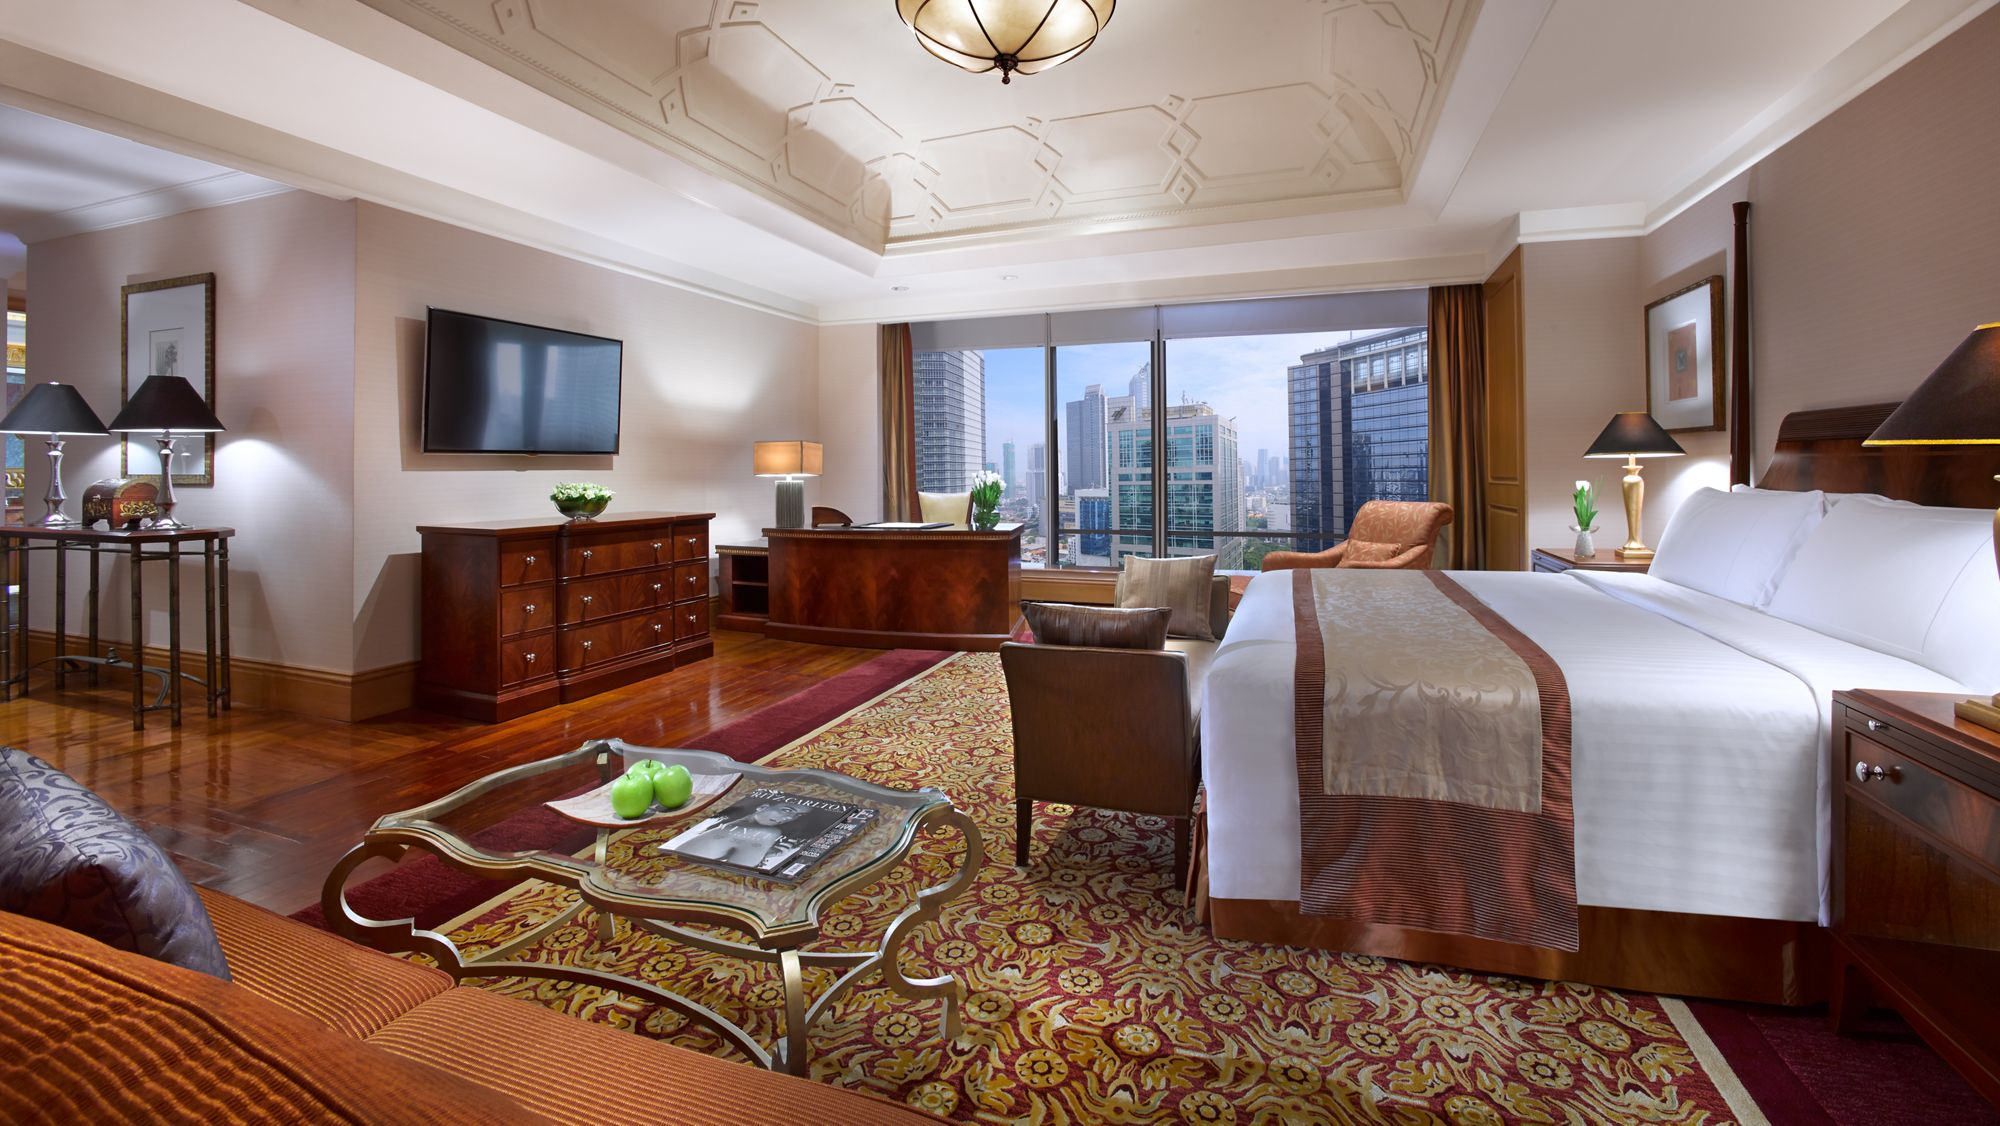 Kết quả hình ảnh cho President Suite/ Presidential Suite room